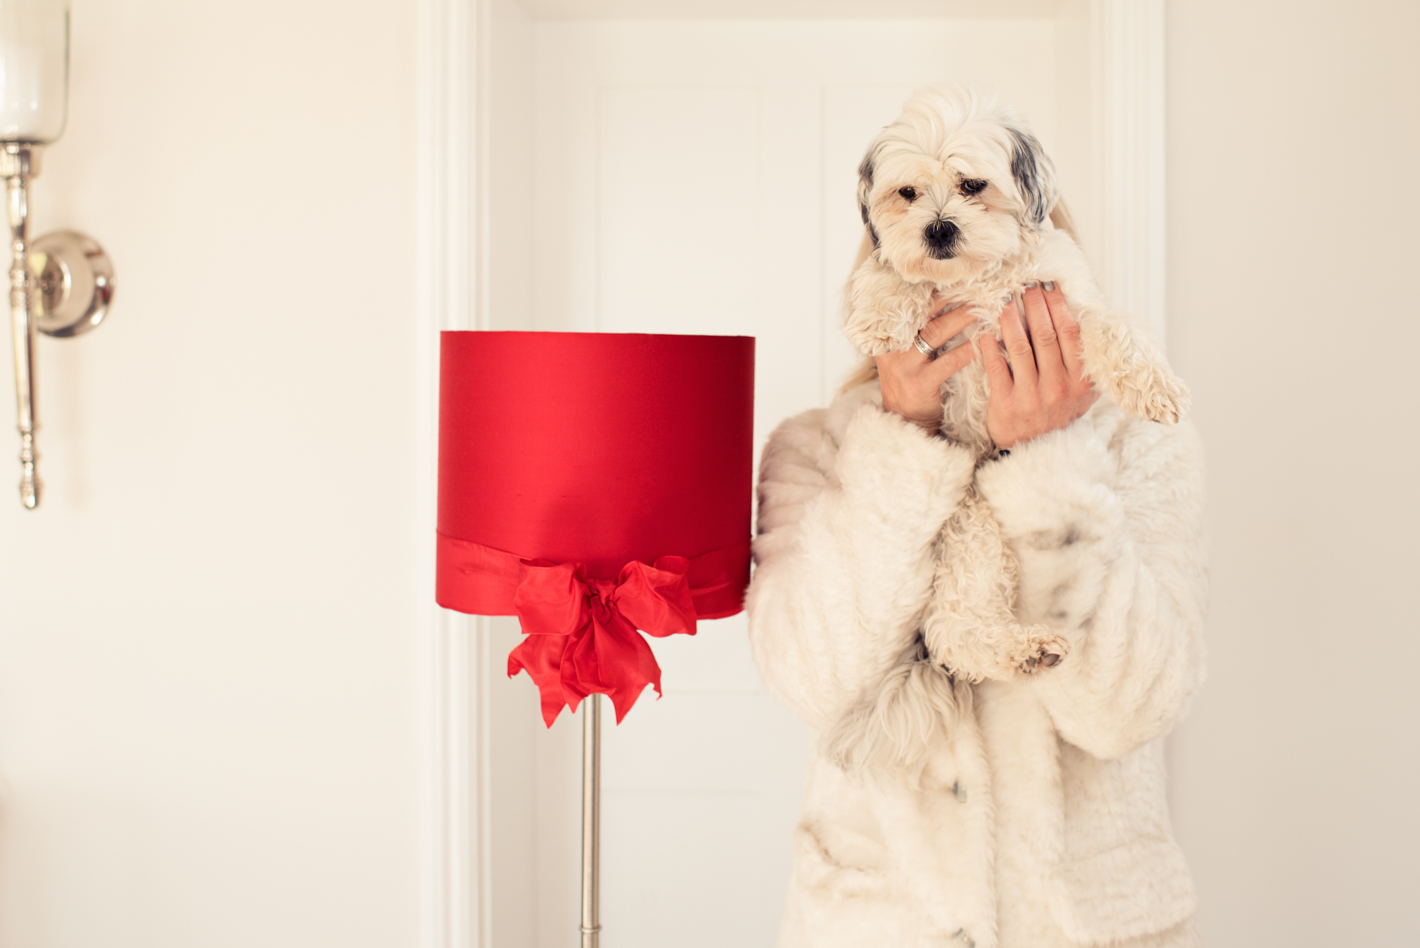 Humorous photo of a woman in a white fluffy coat, standing in a white room, next to a bright red lampshade, whilst holding a small, fluffy white dog in front of her face.